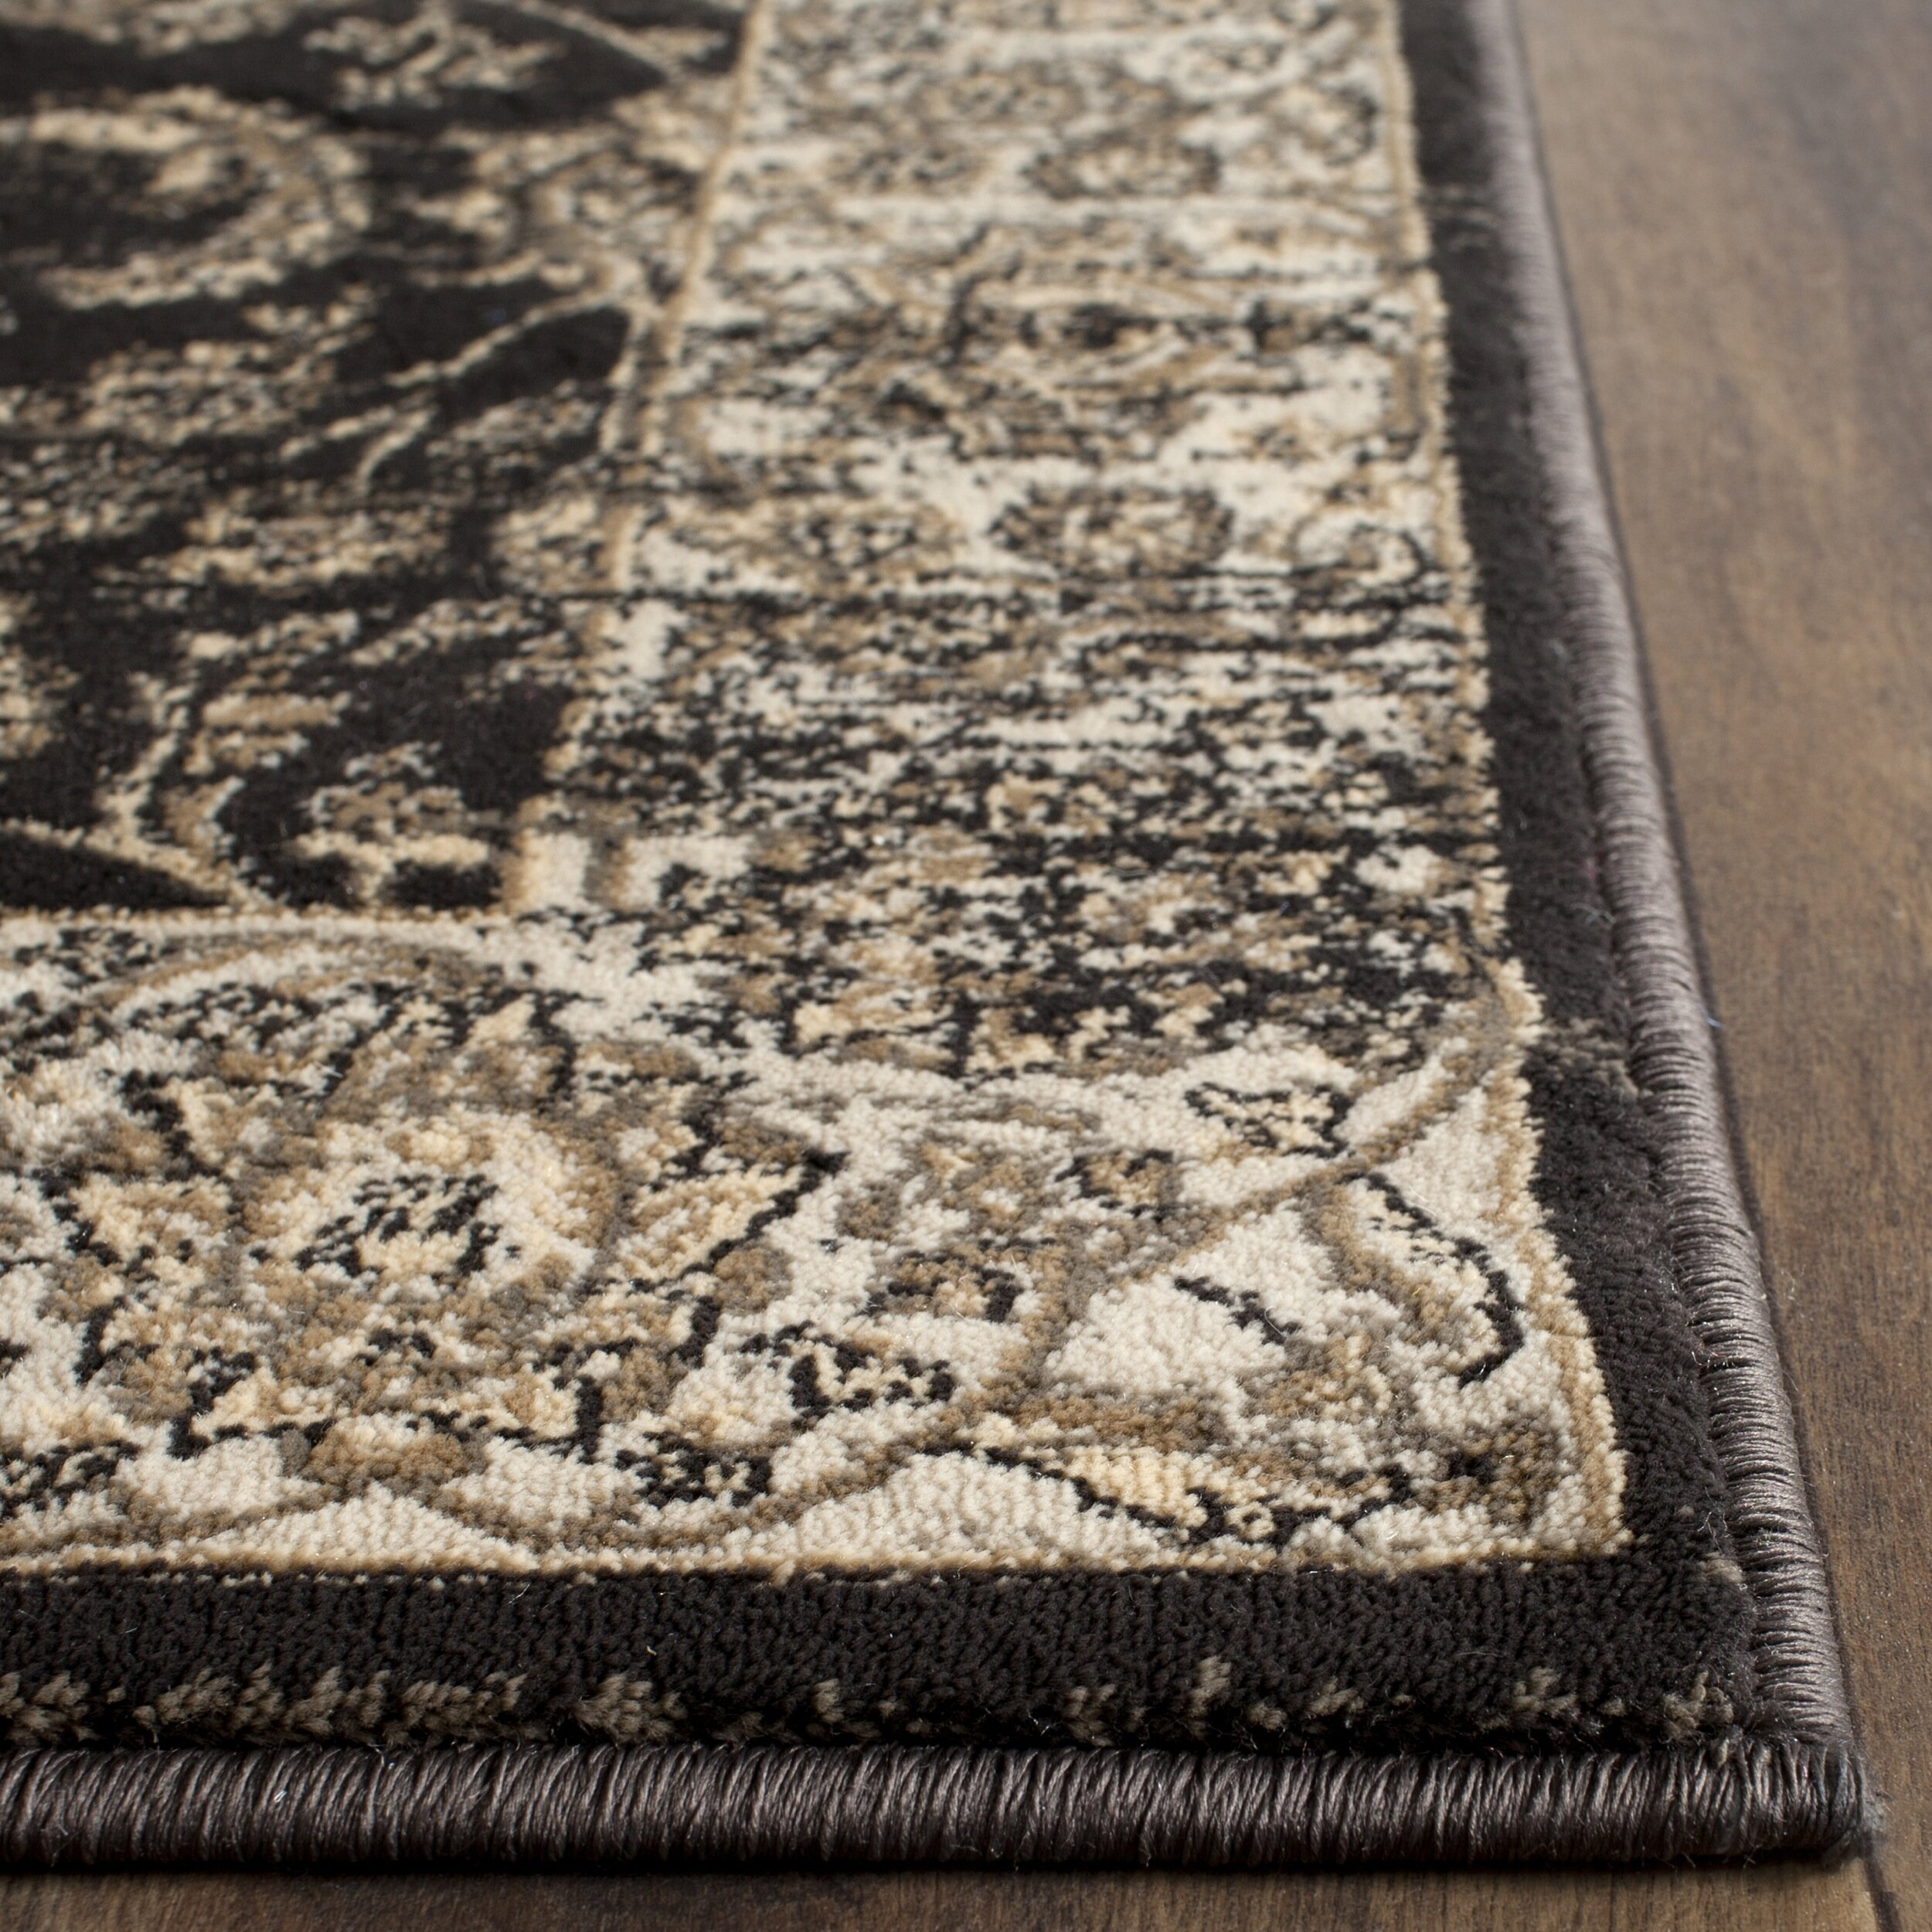 Safavieh Vintage BlackIvory Area Rug amp Reviews Wayfair : Safavieh Vintage Black Ivory Area Rug VTG571F from www.wayfair.com size 2500 x 2500 jpeg 1603kB